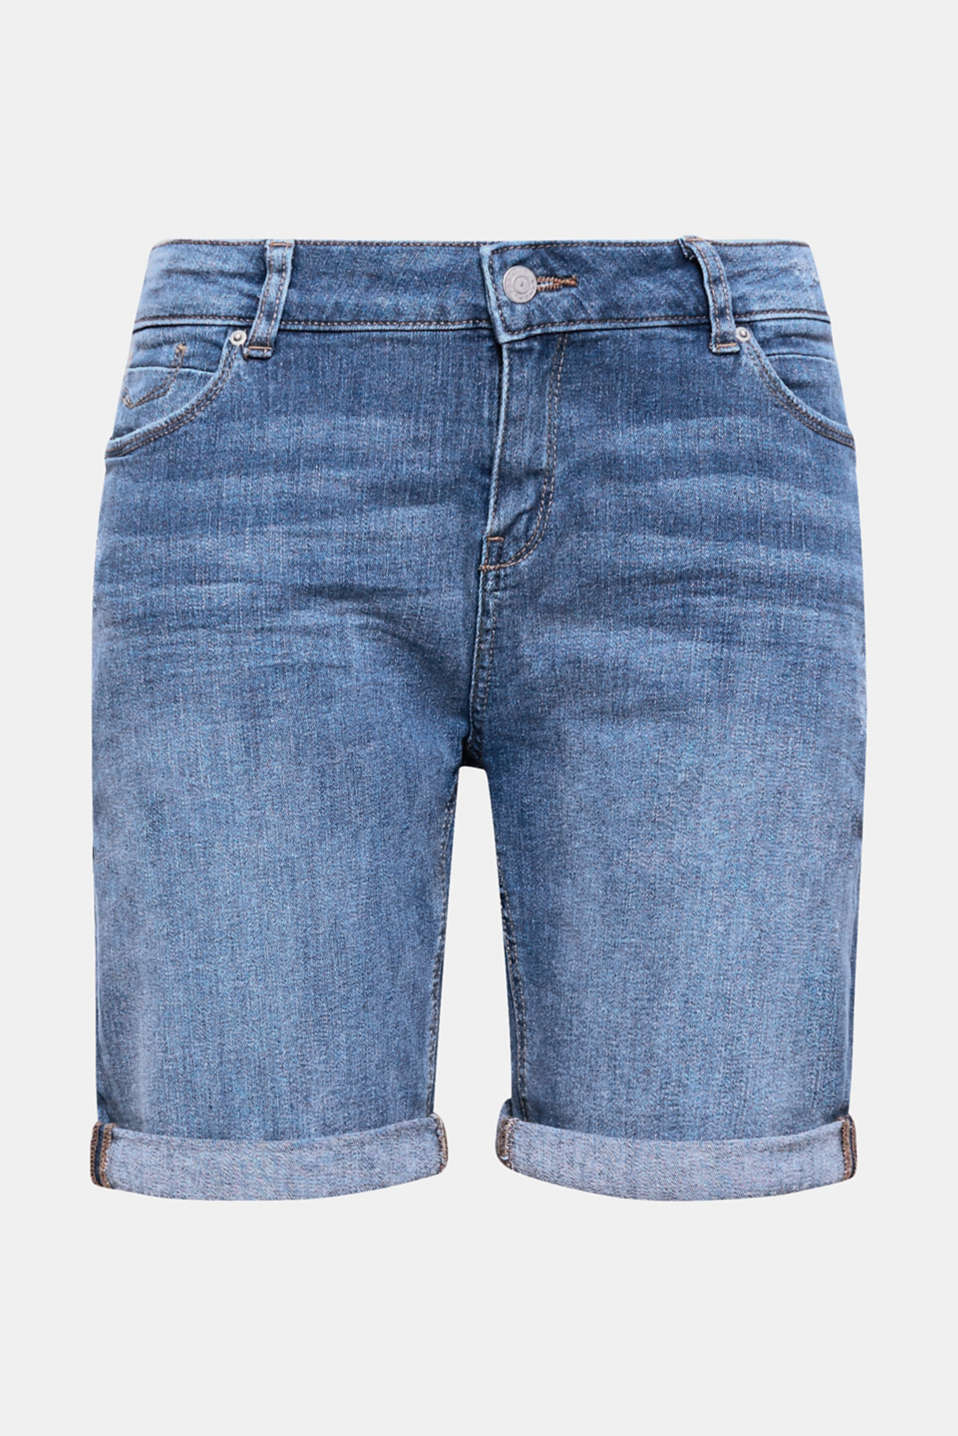 En klassiker til luftige sommerlige stylings! Disse shorts i stretchdenim er et trendy highlight med destroyed-effekterne og variable opslag på buksebenene.